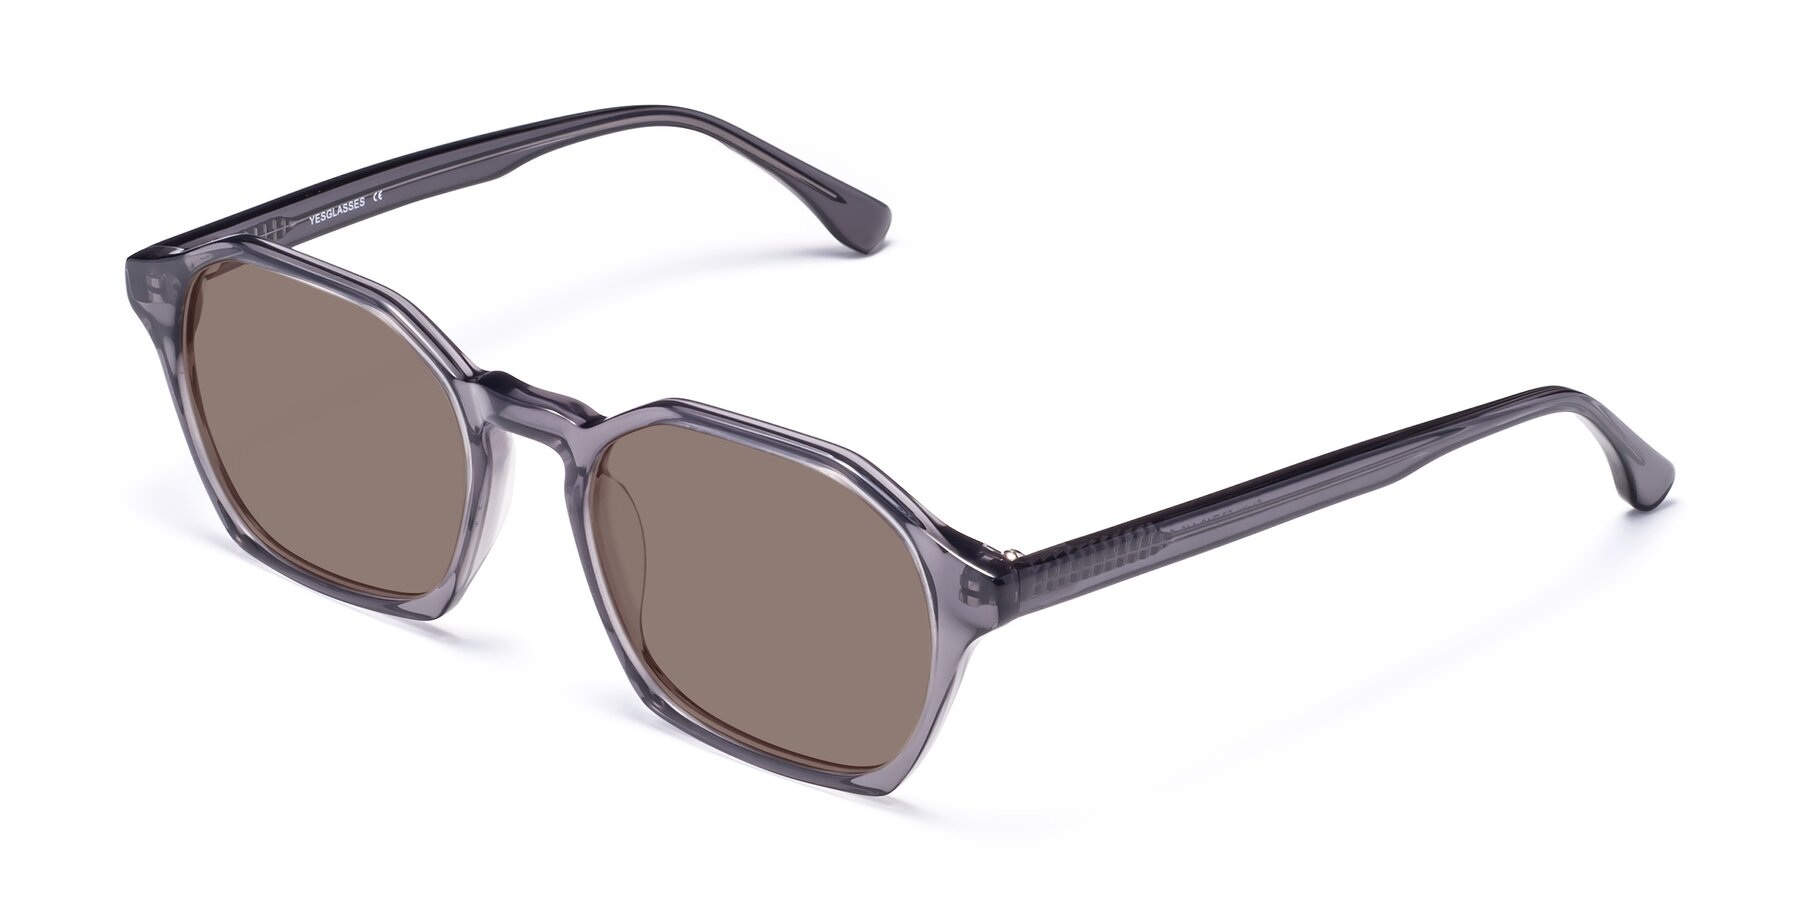 Angle of Stoltz in Translucent Gray with Medium Brown Tinted Lenses